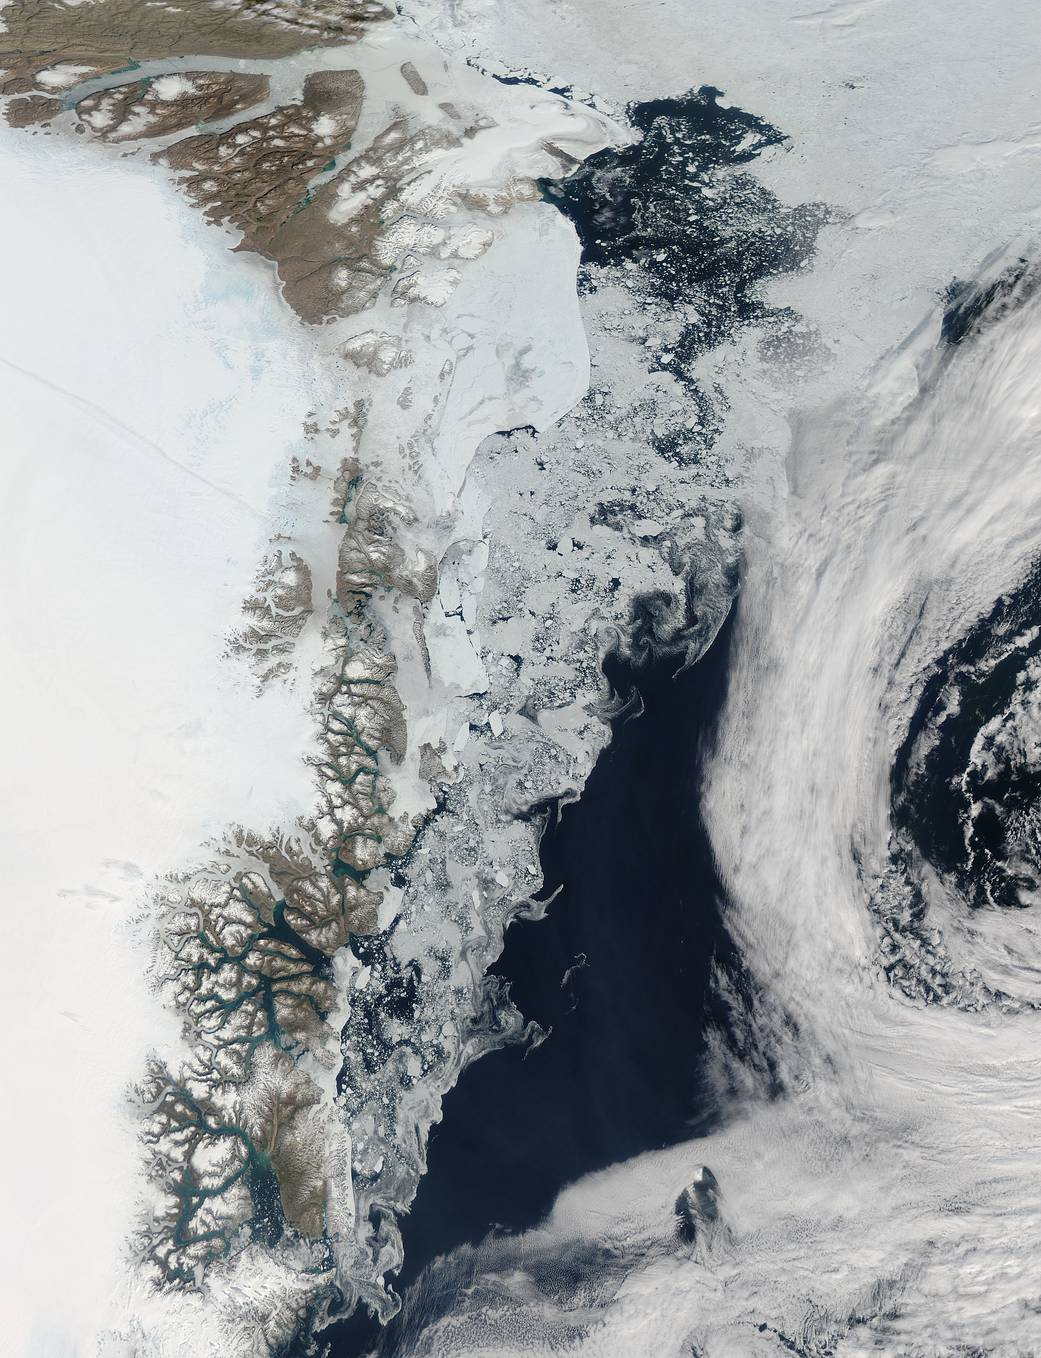 Swirls of sea ice along the coast and dark blue waters of the Arctic